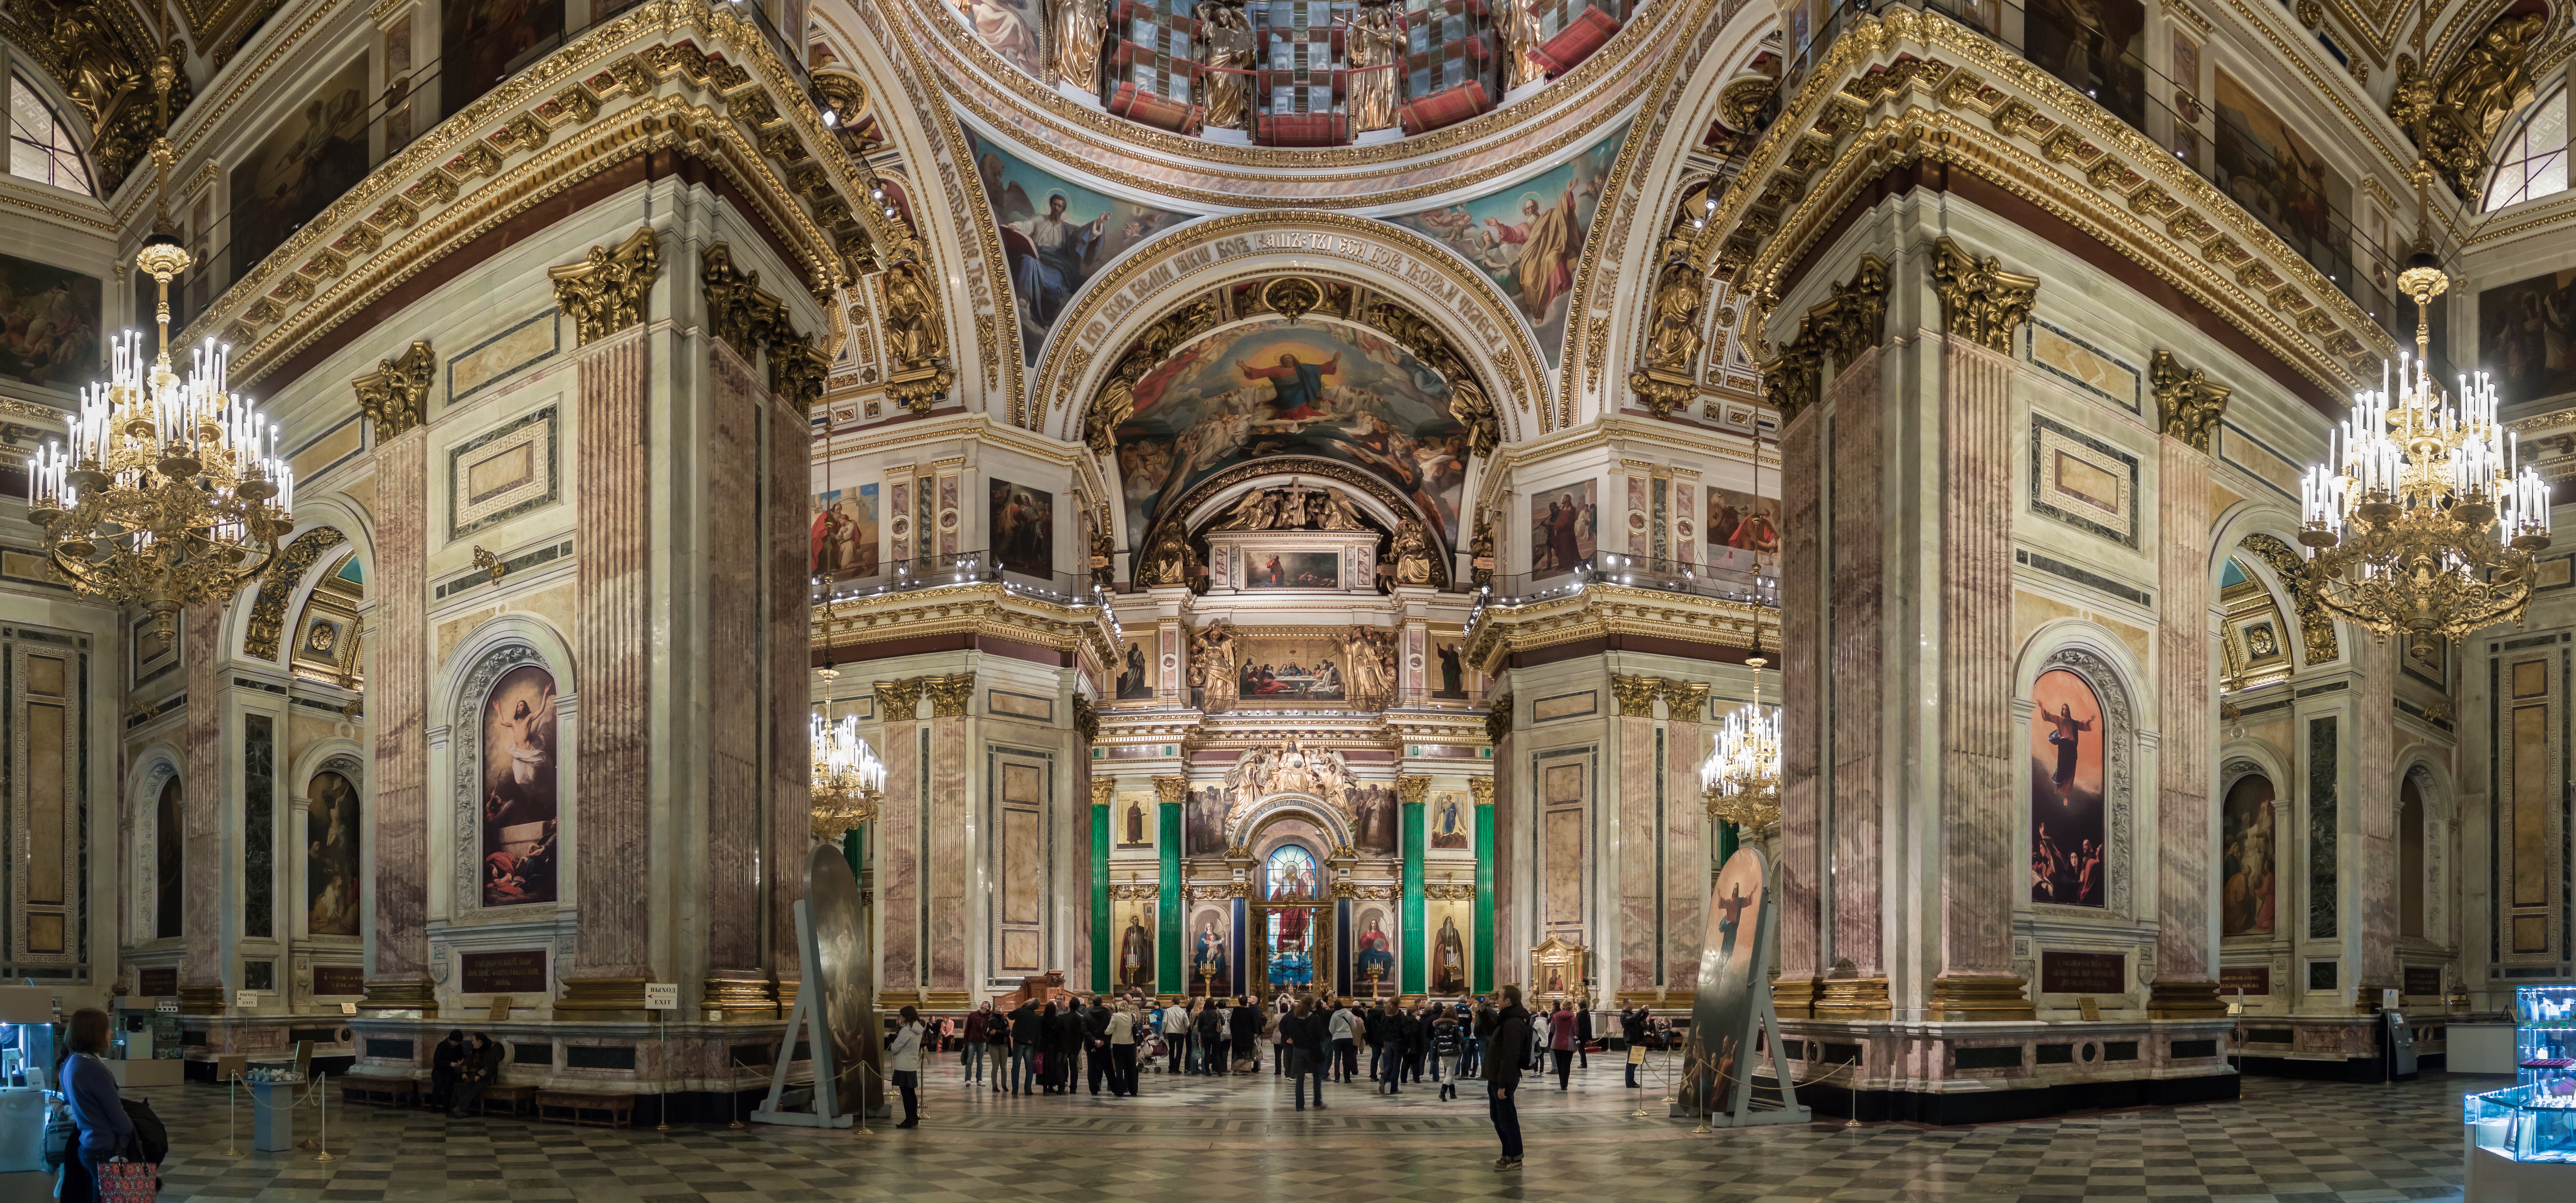 saint isaac s cathedral wikipedia rh en wikipedia org st isaac's cathedral columns damaged st isaac's cathedral admission ticket